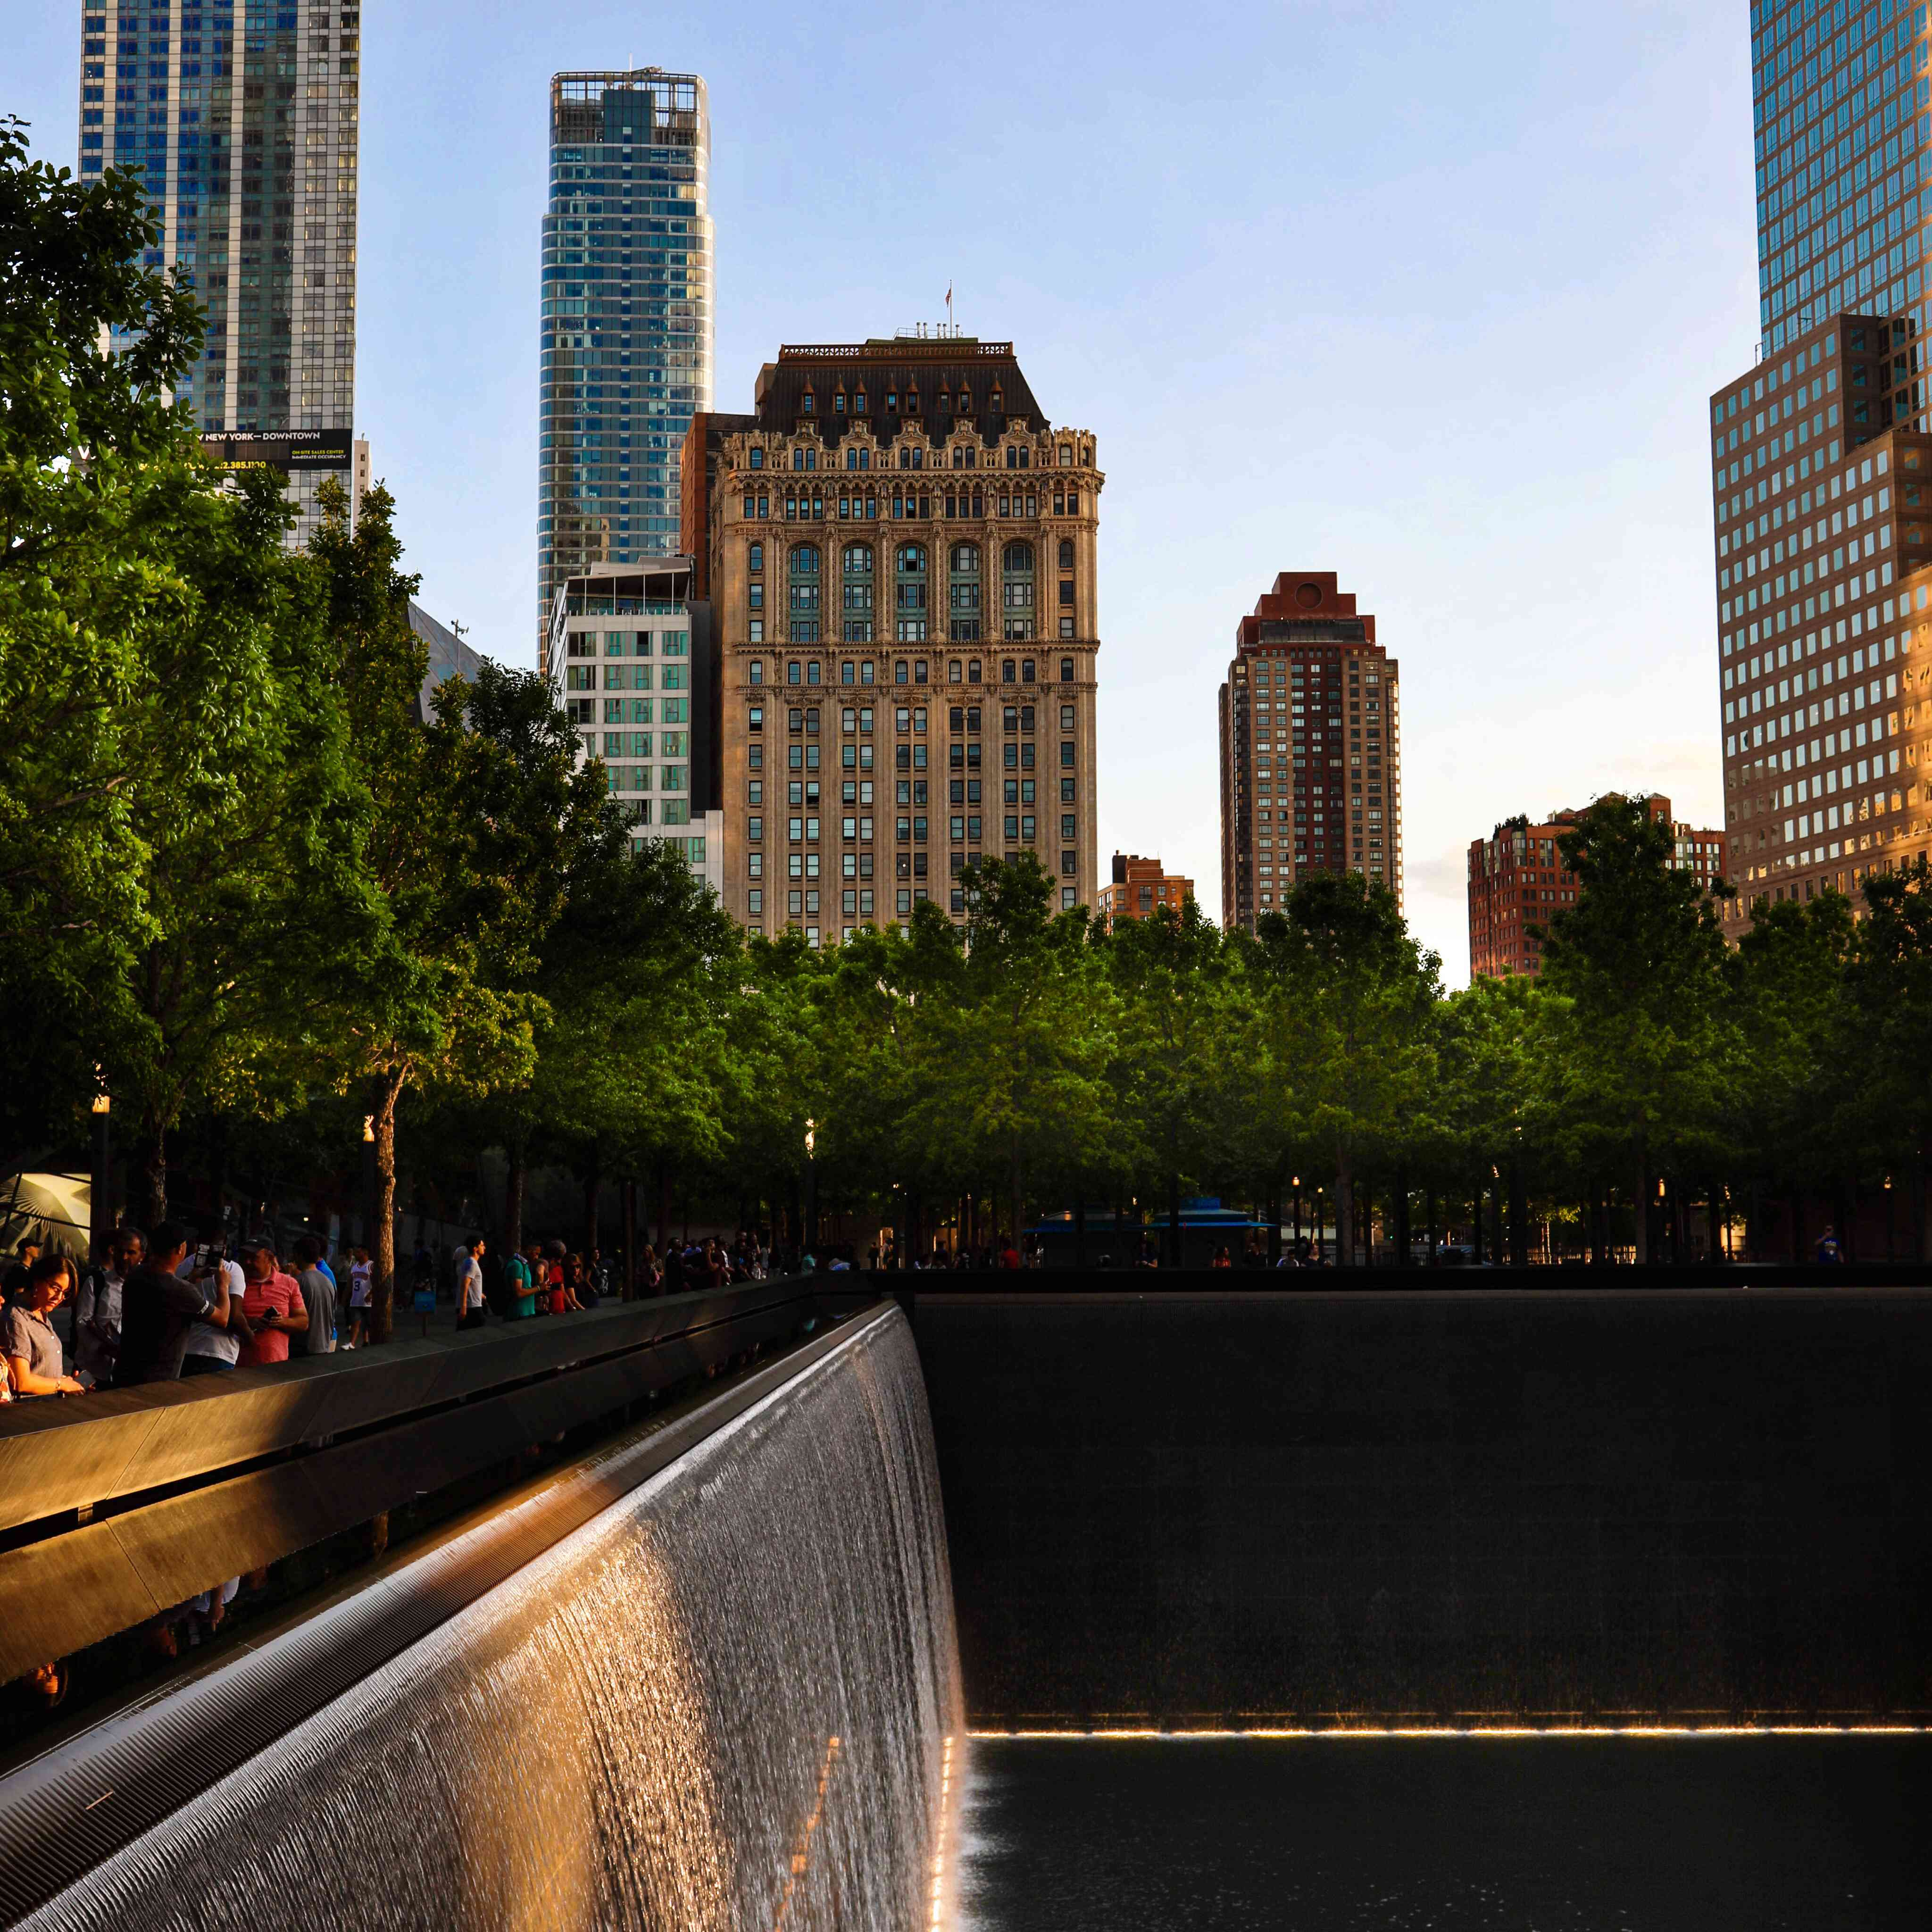 A view of the 9-11 waterfall with buildings in the background